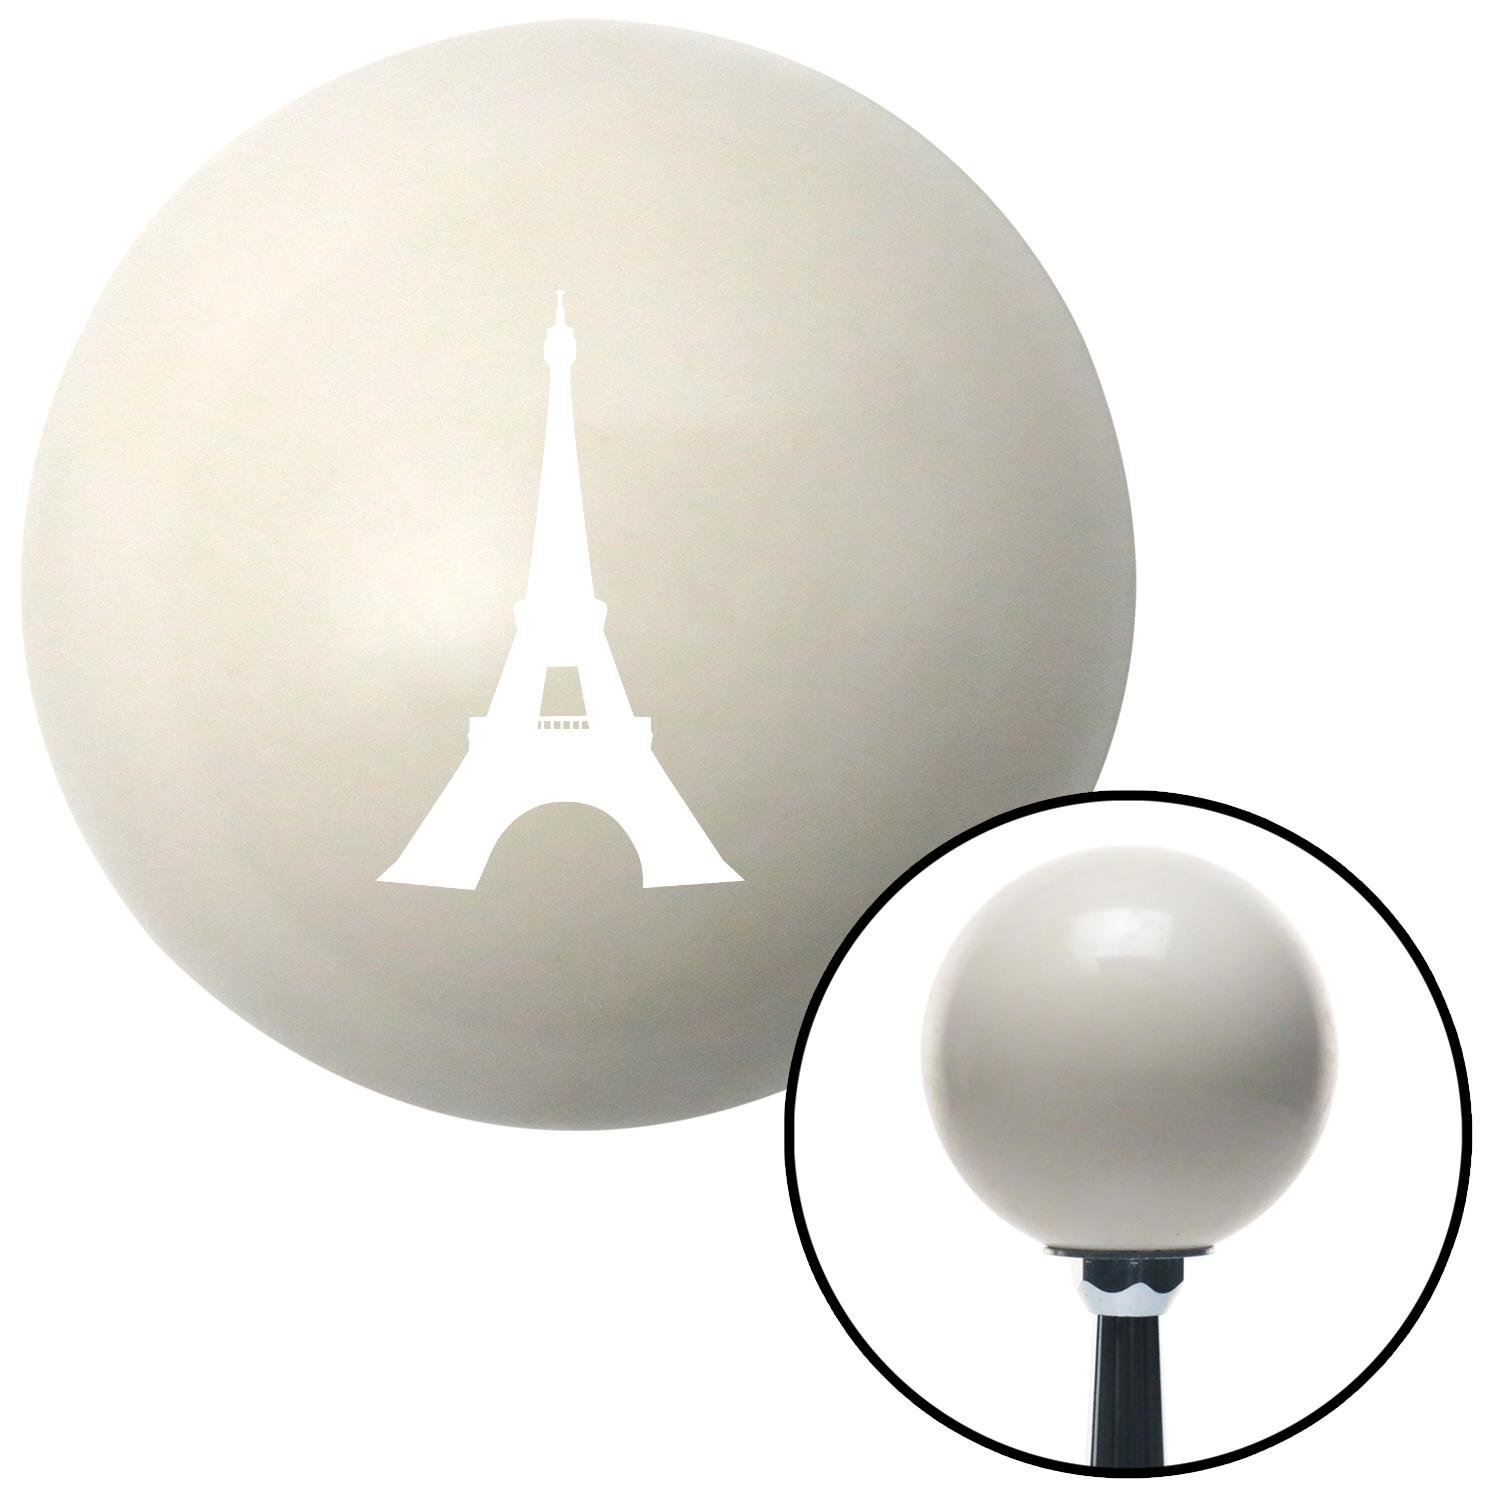 American Shifter 30154 Ivory Shift Knob with 16mm x 1.5 Insert White The Eiffel Tower